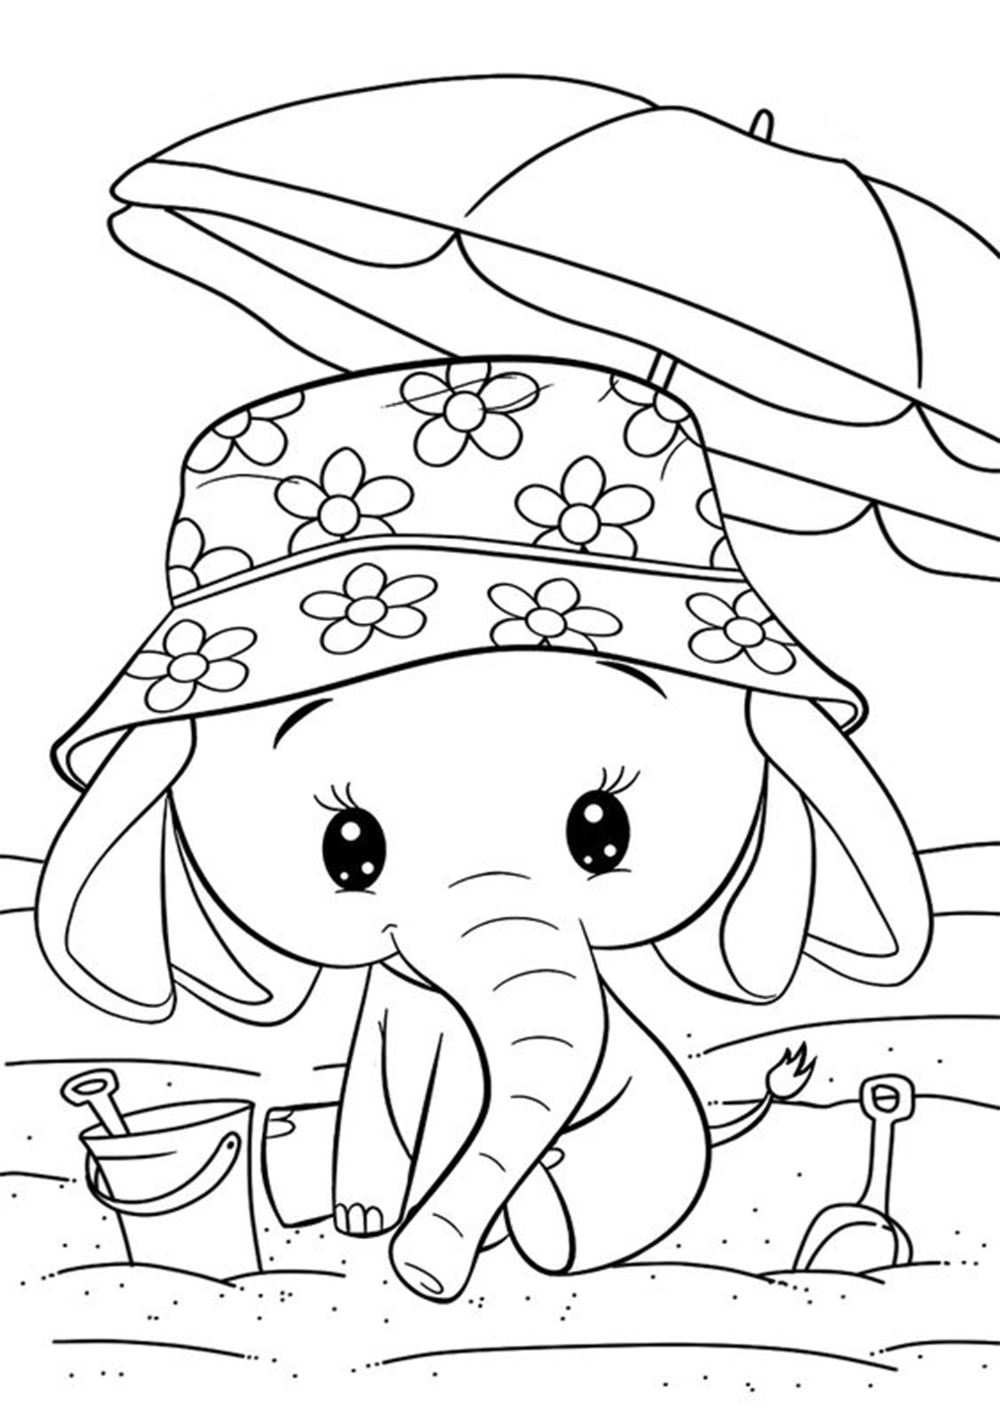 Free Easy To Print Elephant Coloring Pages Elephant Coloring